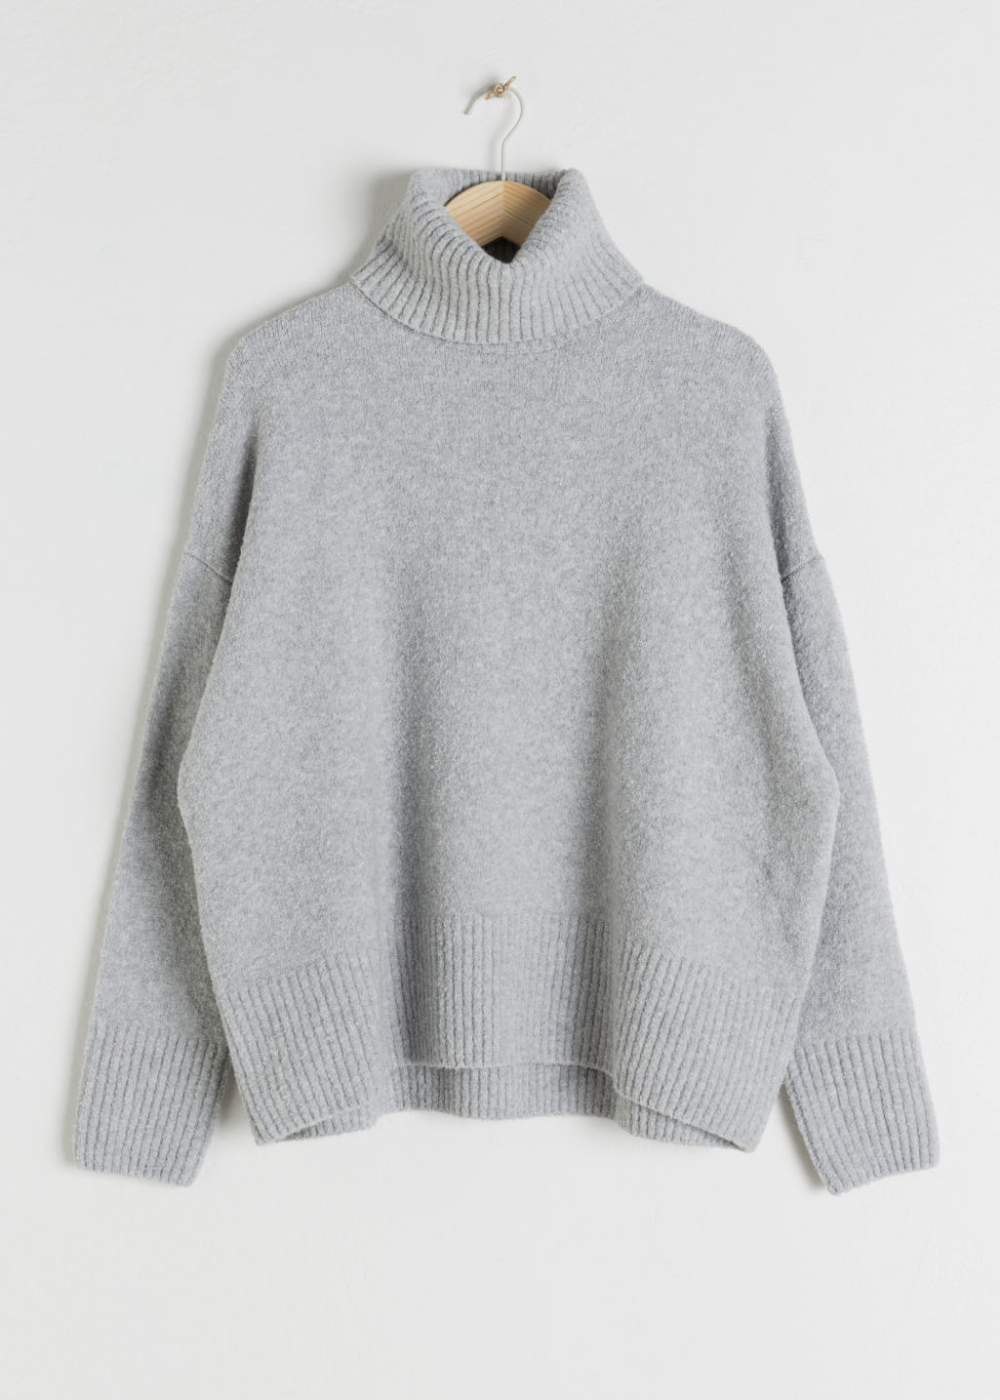 High Neck Sweater Grey Turtlenecks & Other Stories